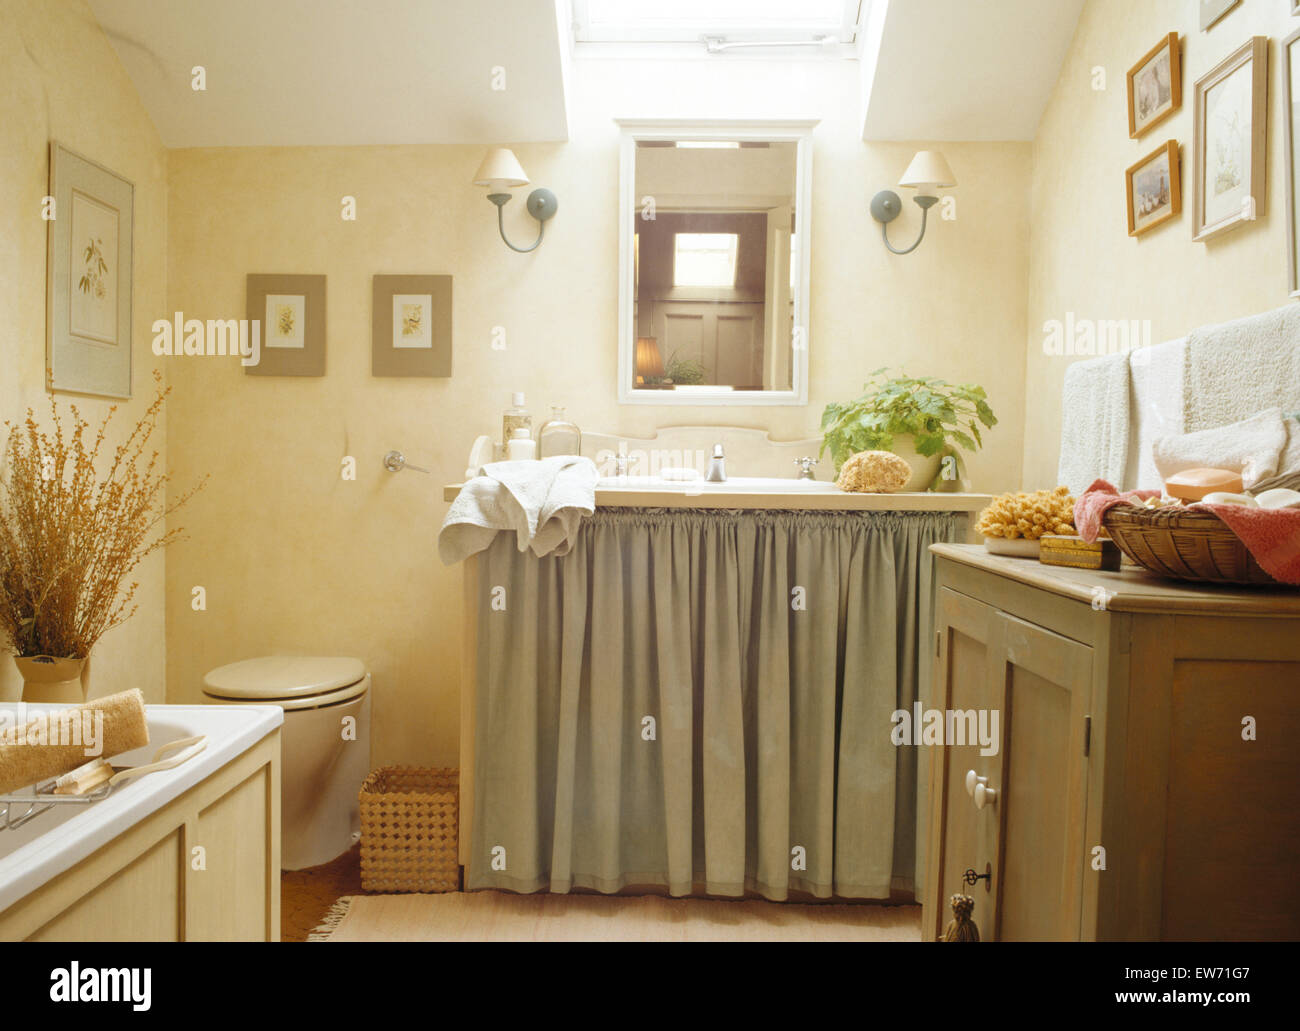 Curtains on vanity unit in small eighties bathroom extension - Stock Image